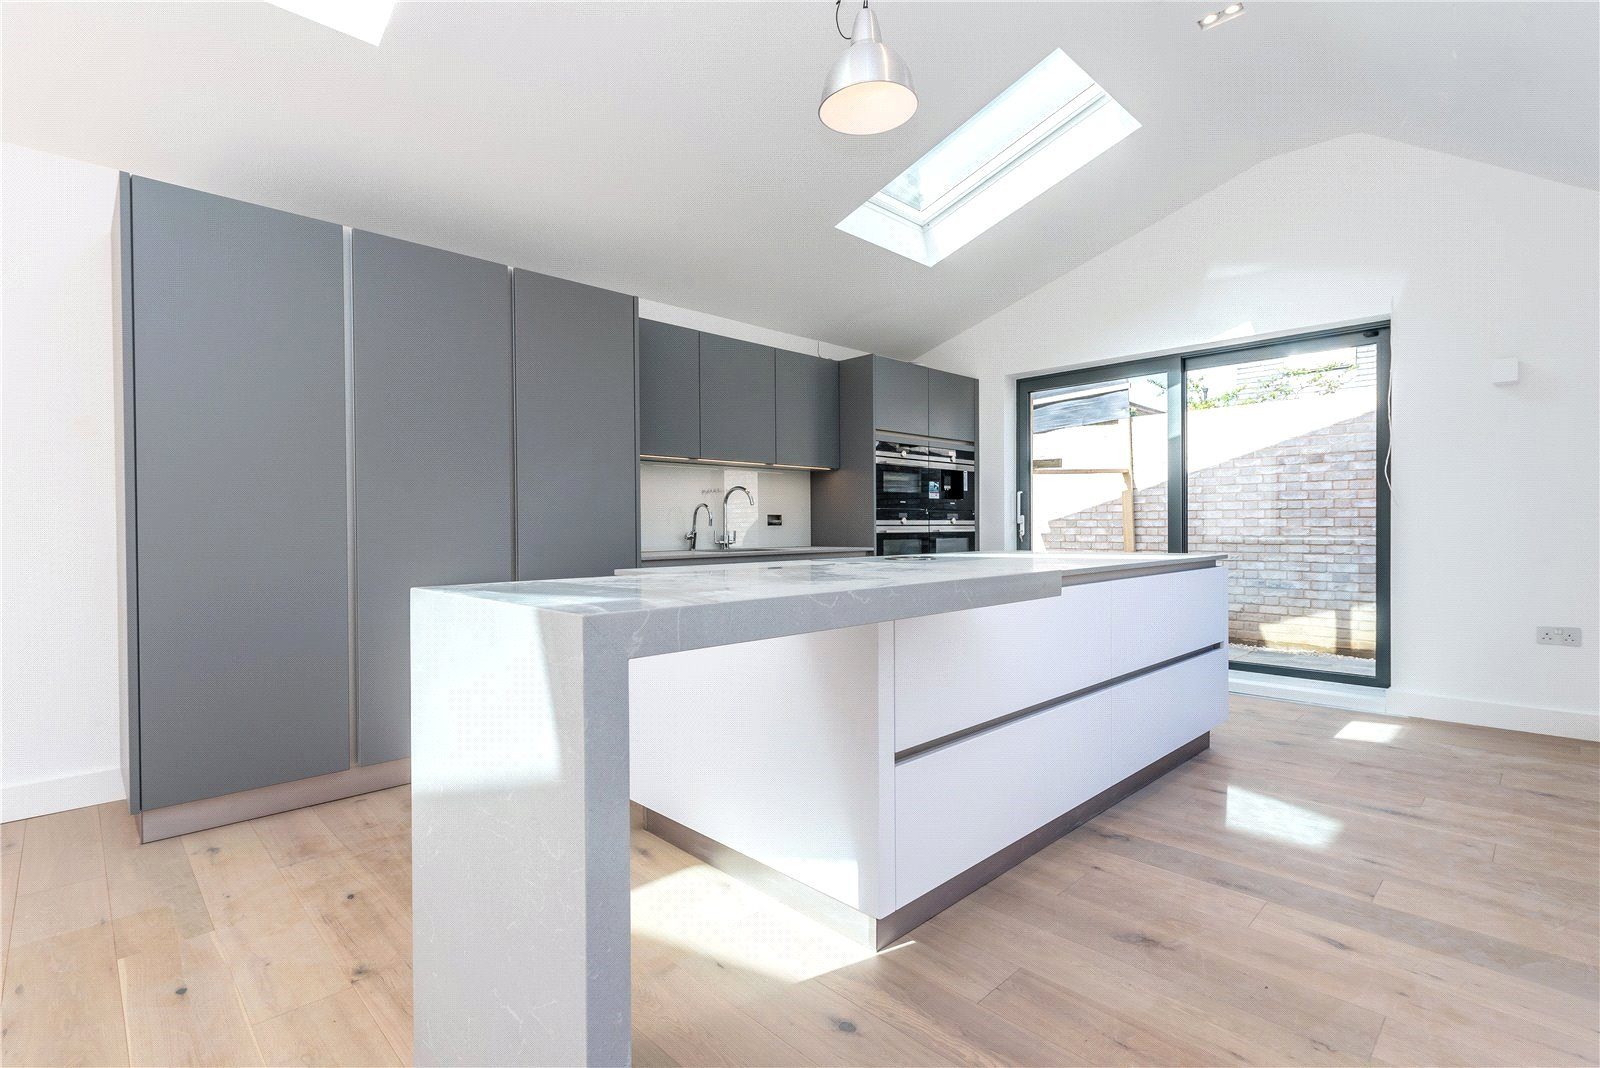 4 Bedrooms Detached House for sale in St James Lane Muswell Hill N10